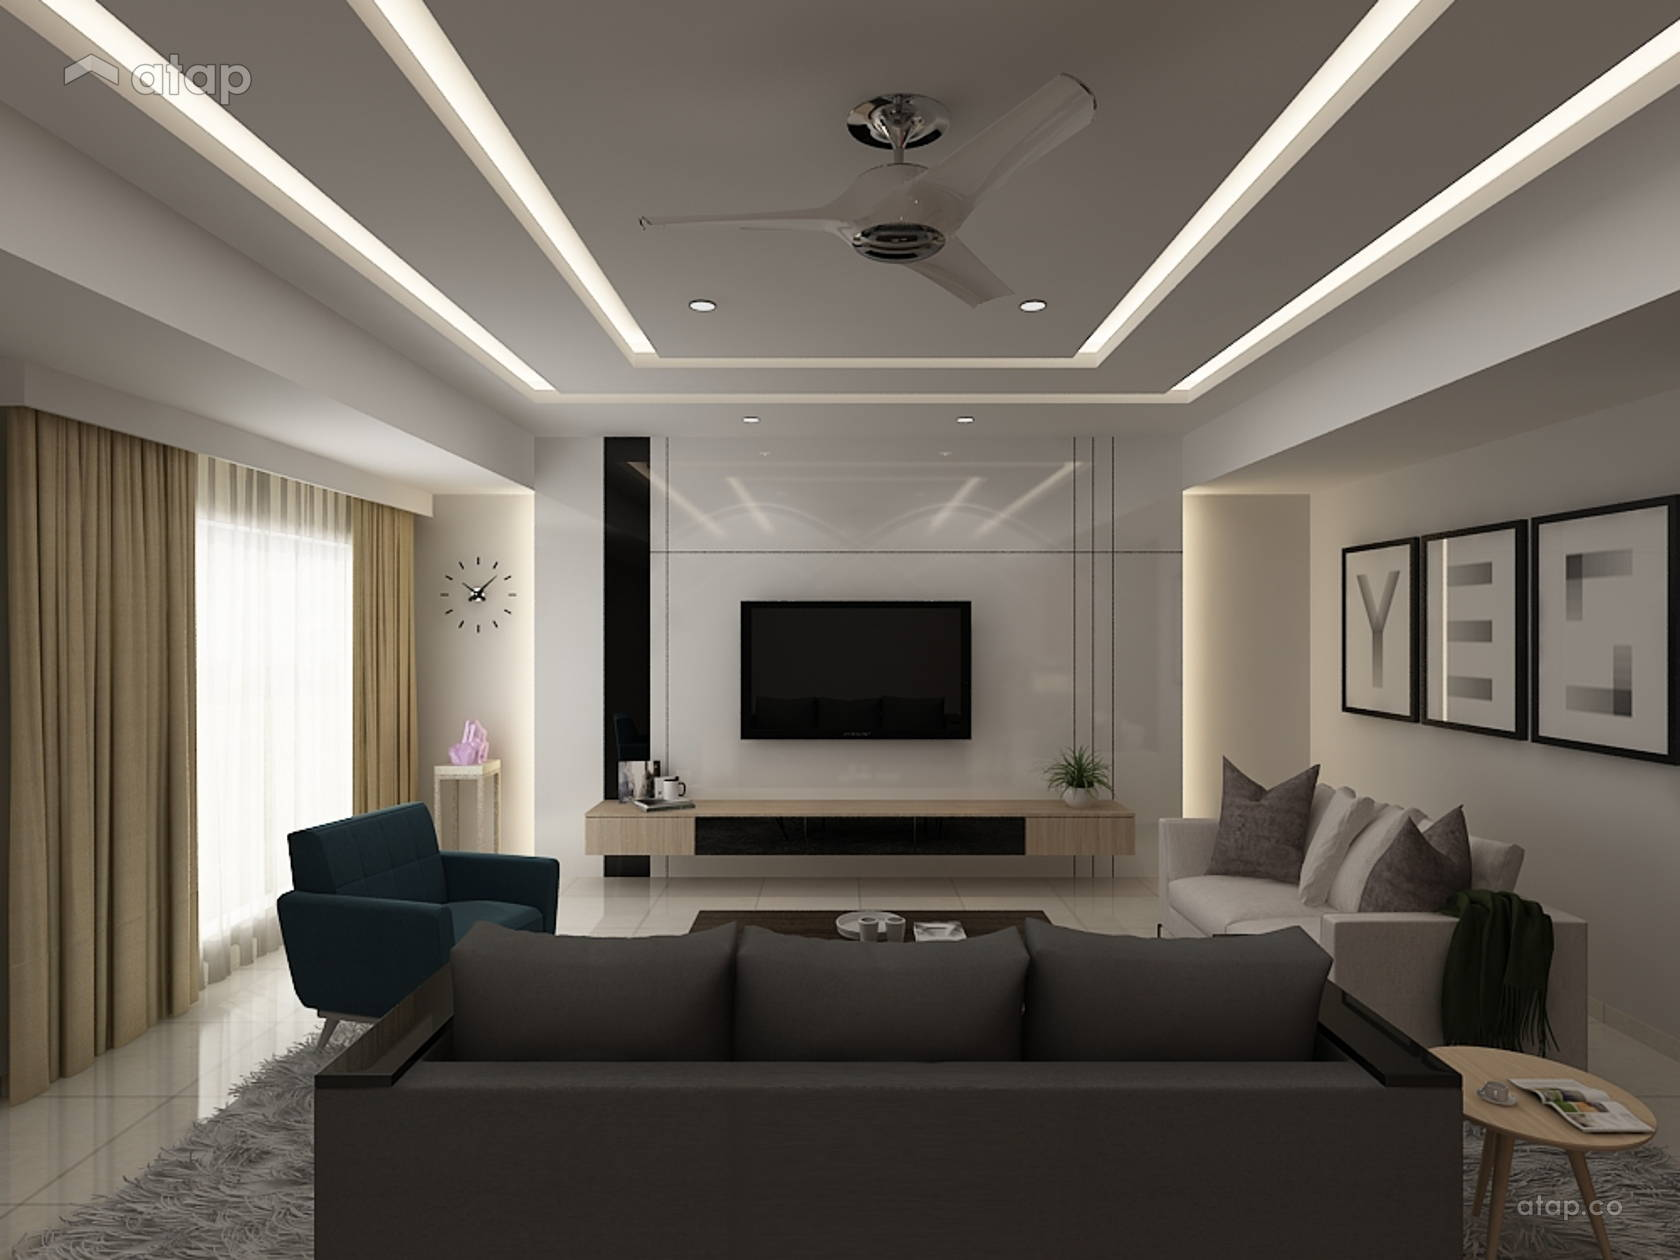 Modern Minimalist interior design renovation ideas, photos and price ...